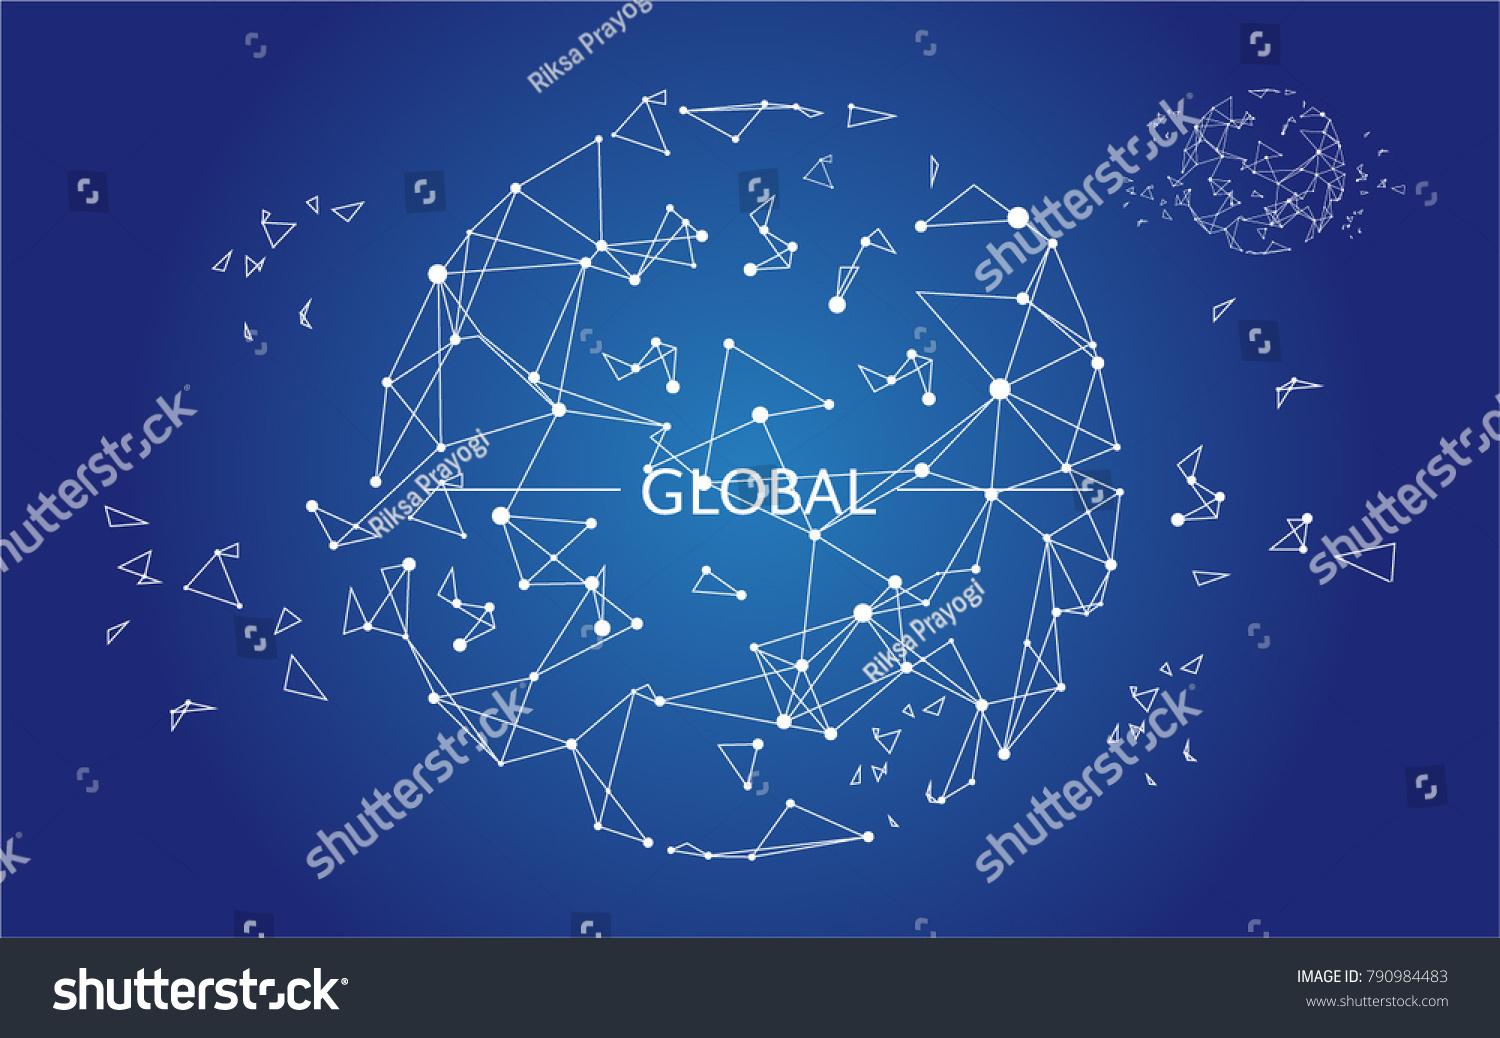 Drawing Lines Meaning : Global globe digital era lines connected stock vector